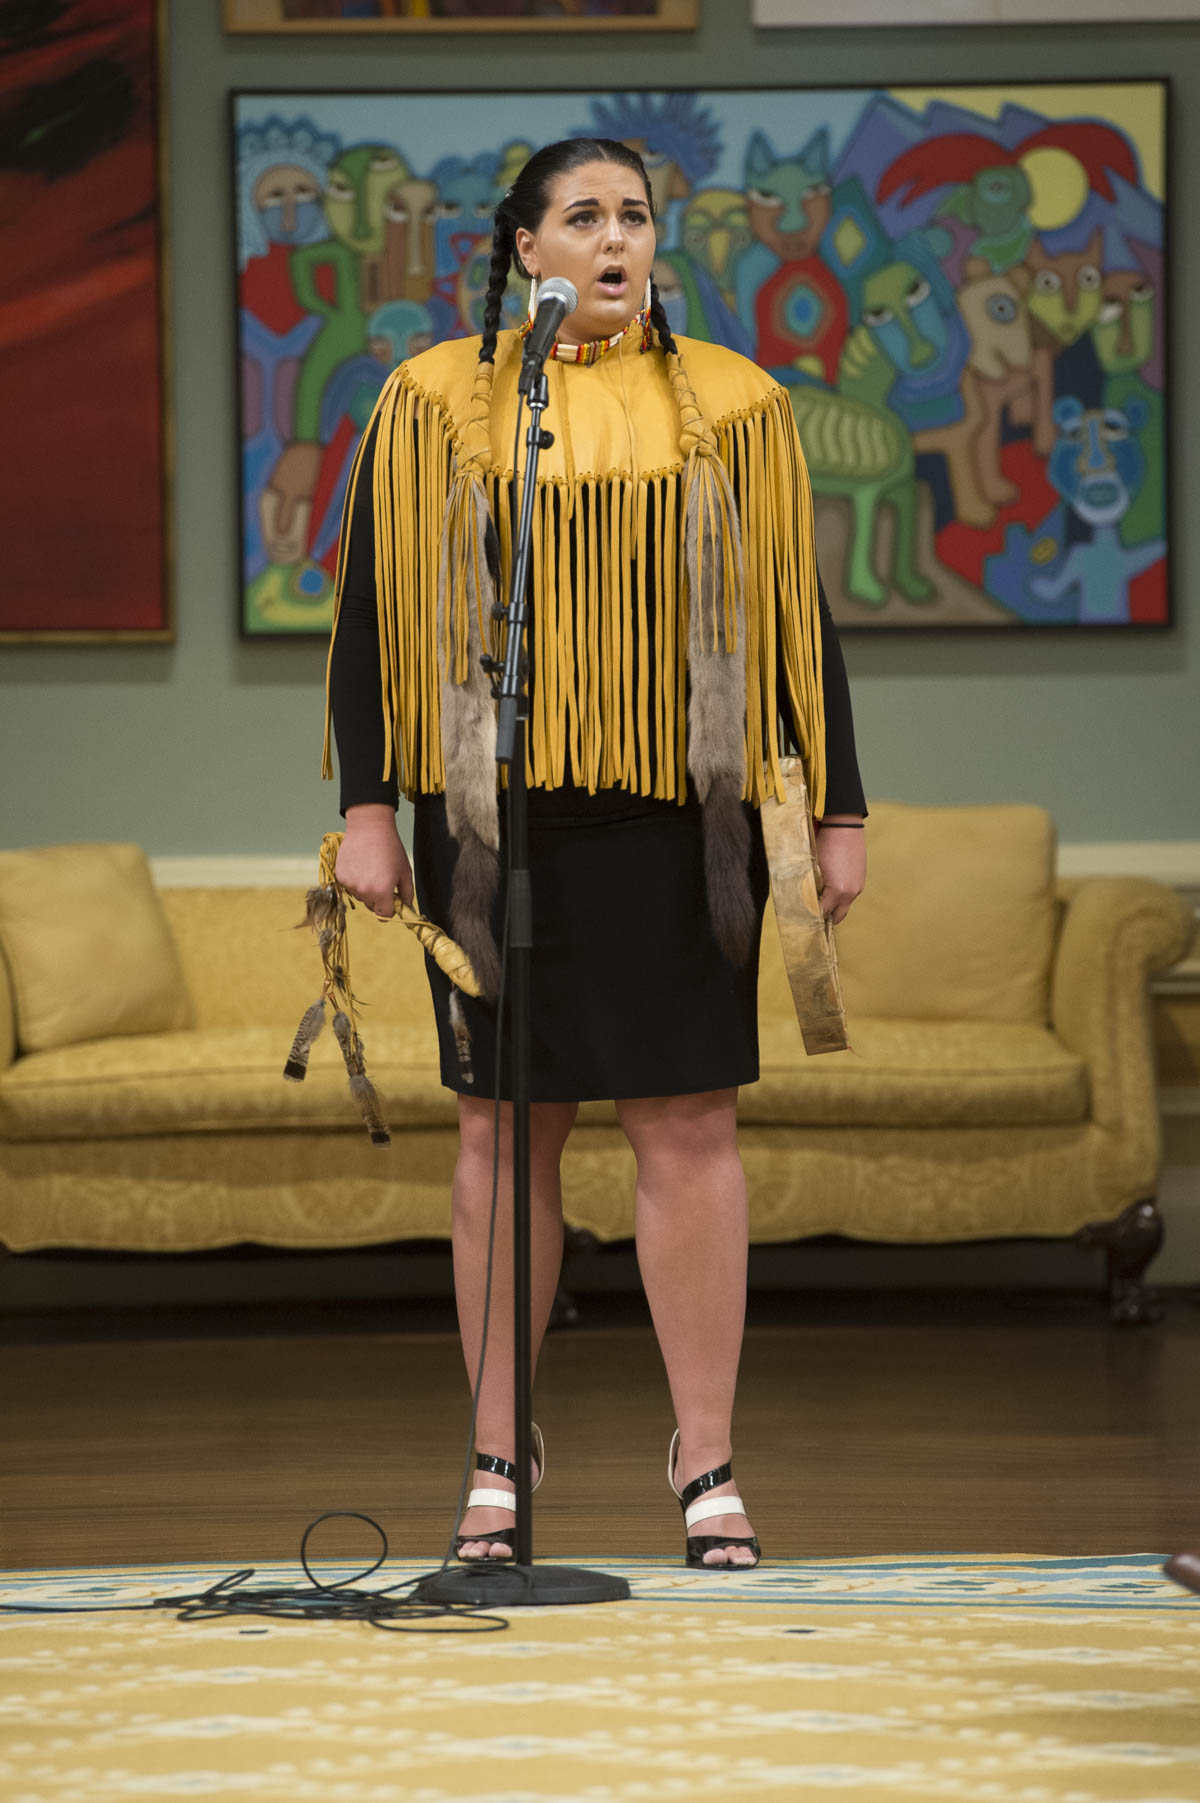 Joanna Diindiiski Kwe, Métis Saugeen Ojibway artist, sans two songs following the Governor General's opening remarks – the first was from the opera Louis Riel, and the second, a traditional indigenous song.